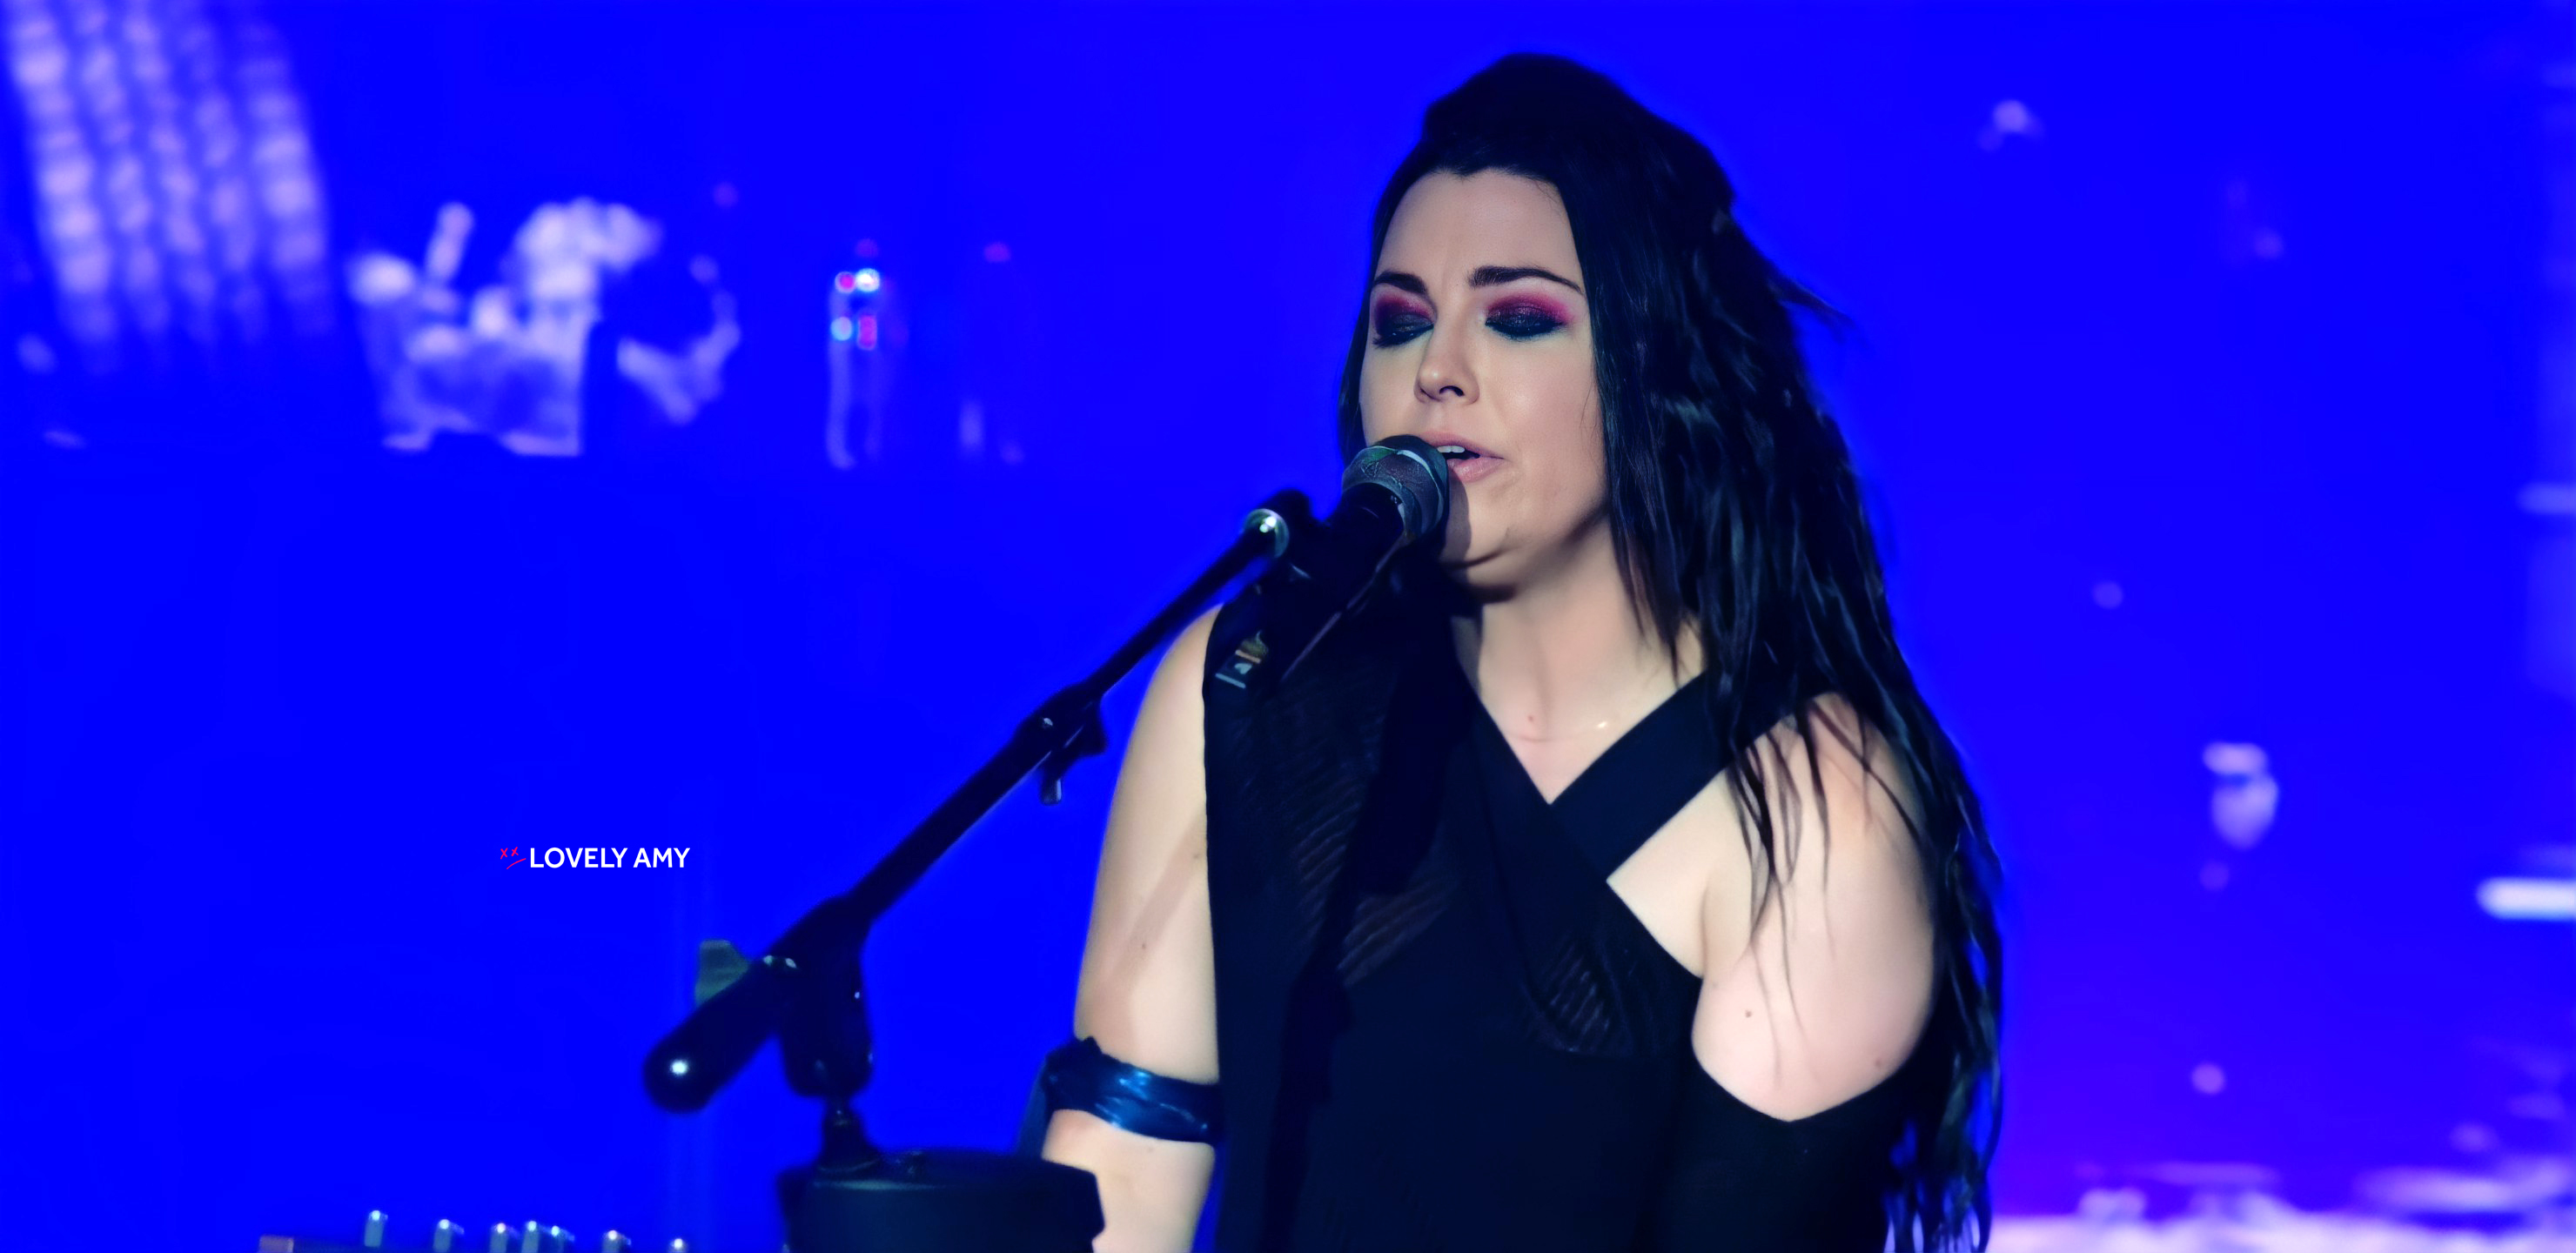 Evanescence Amy Lee - BDriven To Perform Live Concert HQ HD #Evanescence #AmyLee